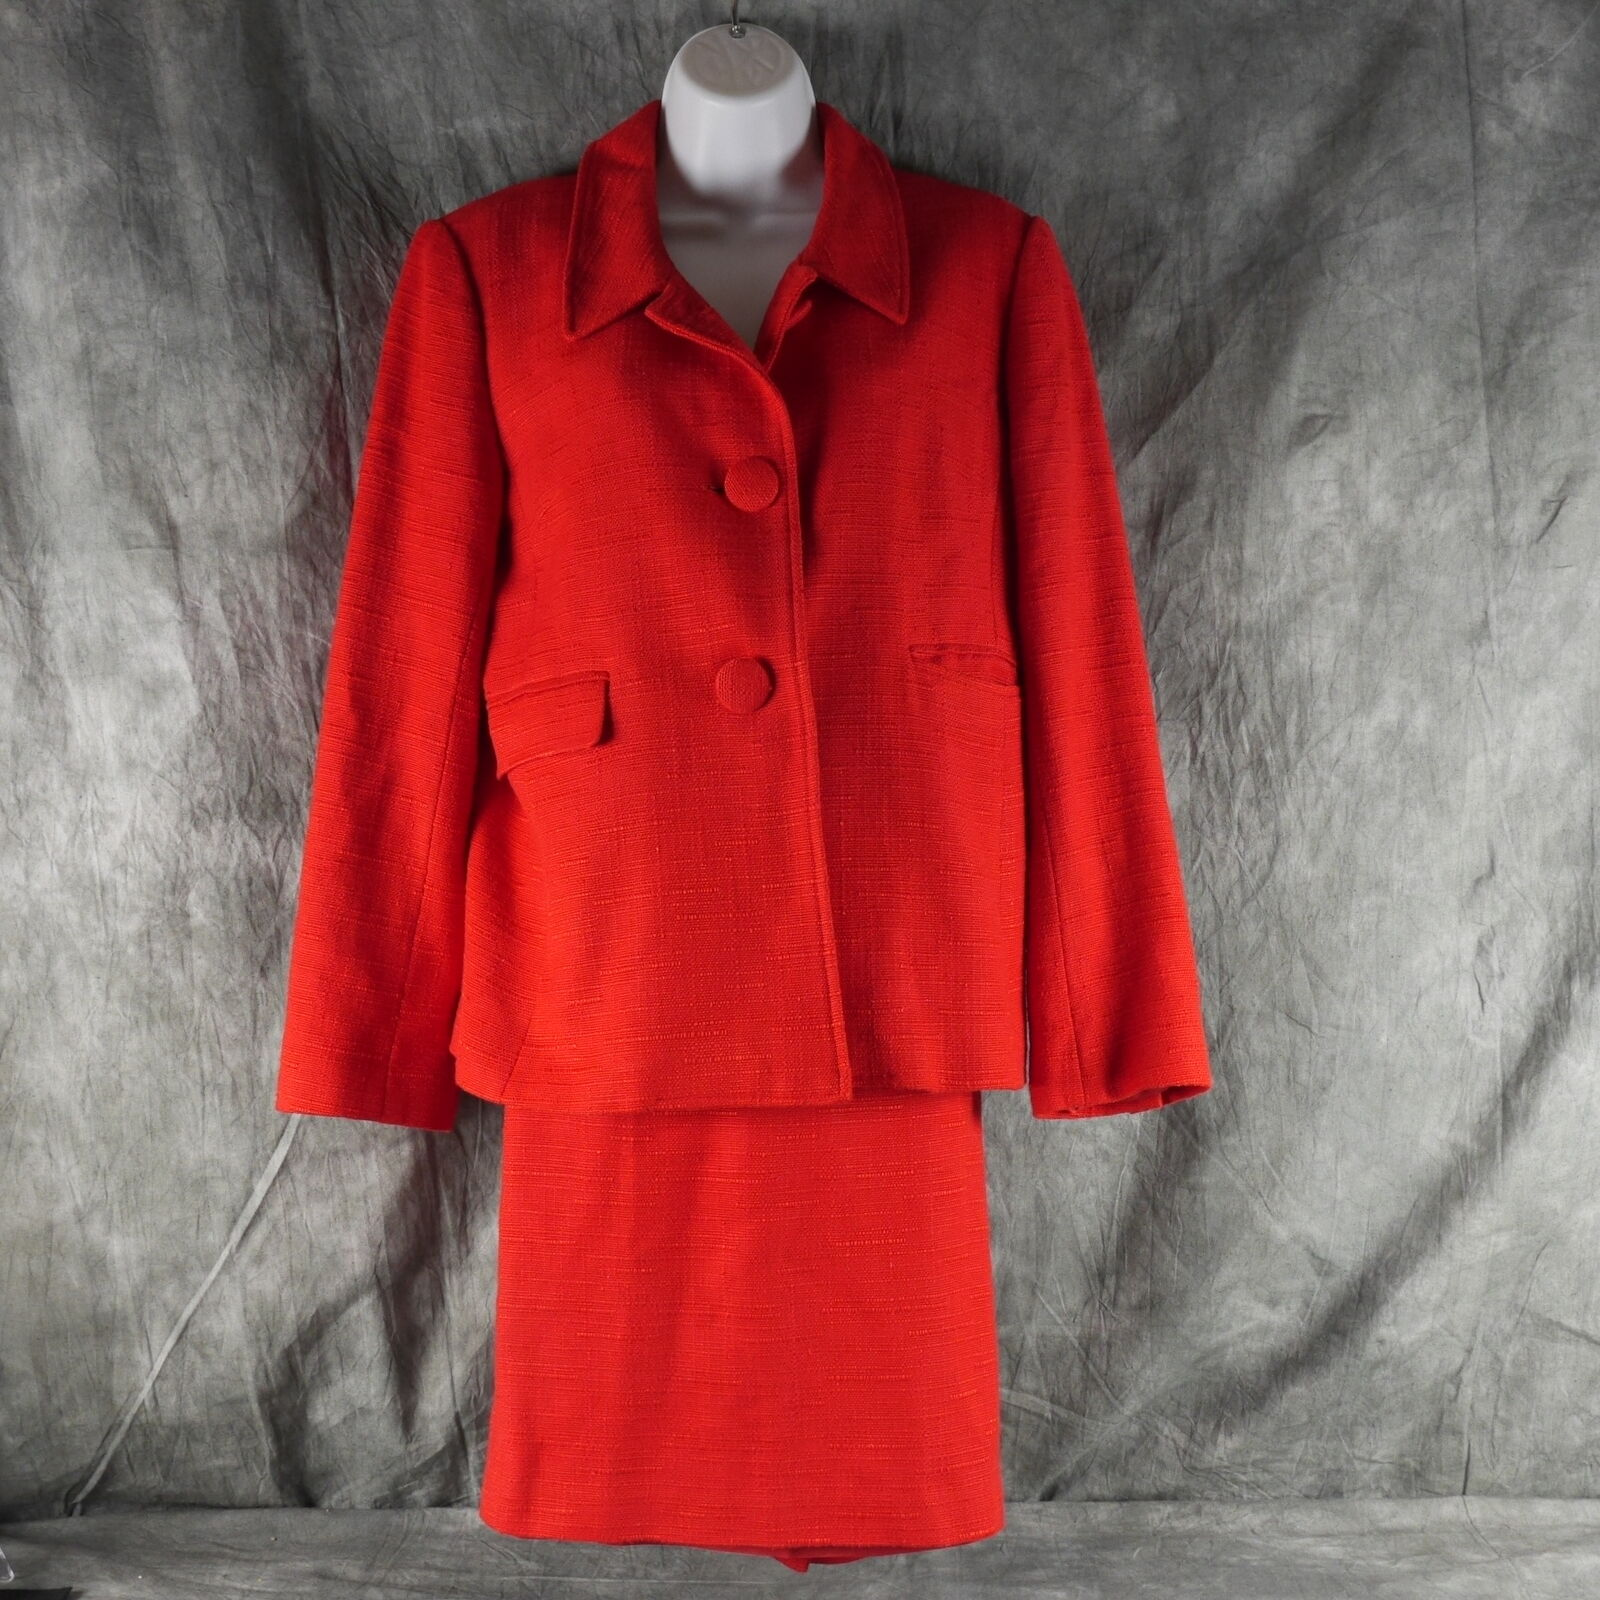 Sara Campbell Solid Red Suit Size 10 8 S1E1